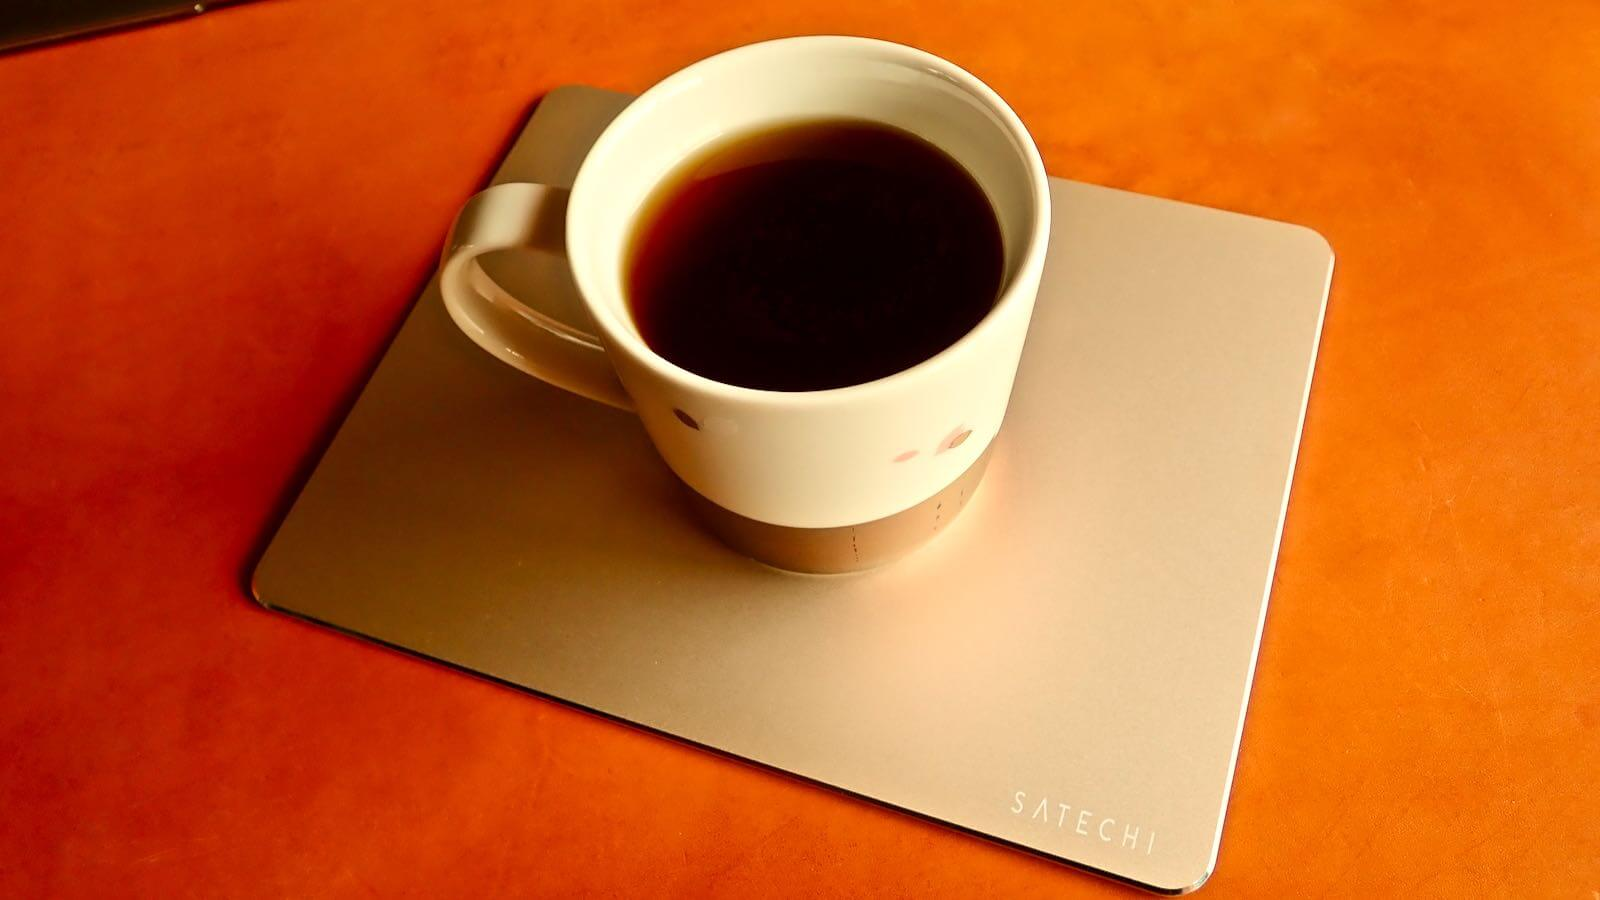 0196 Satechi Mouse pad Aluminum EcoLeather 15